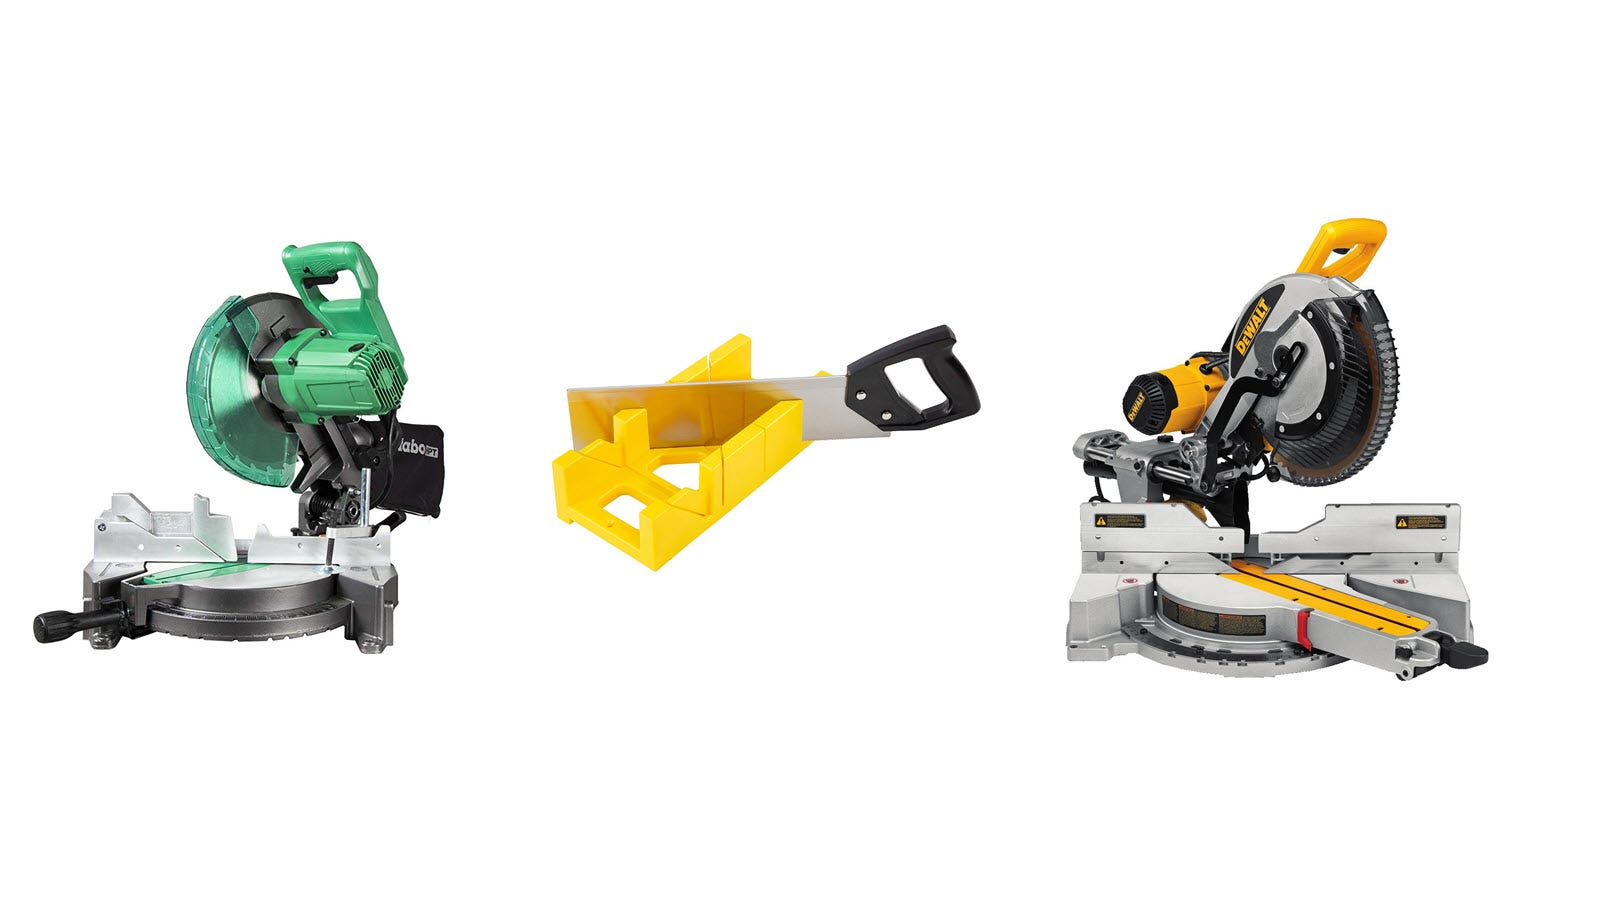 A Metabo miter saw, a GreatNeck miter box with handsaw, and a DEWALT miter saw.